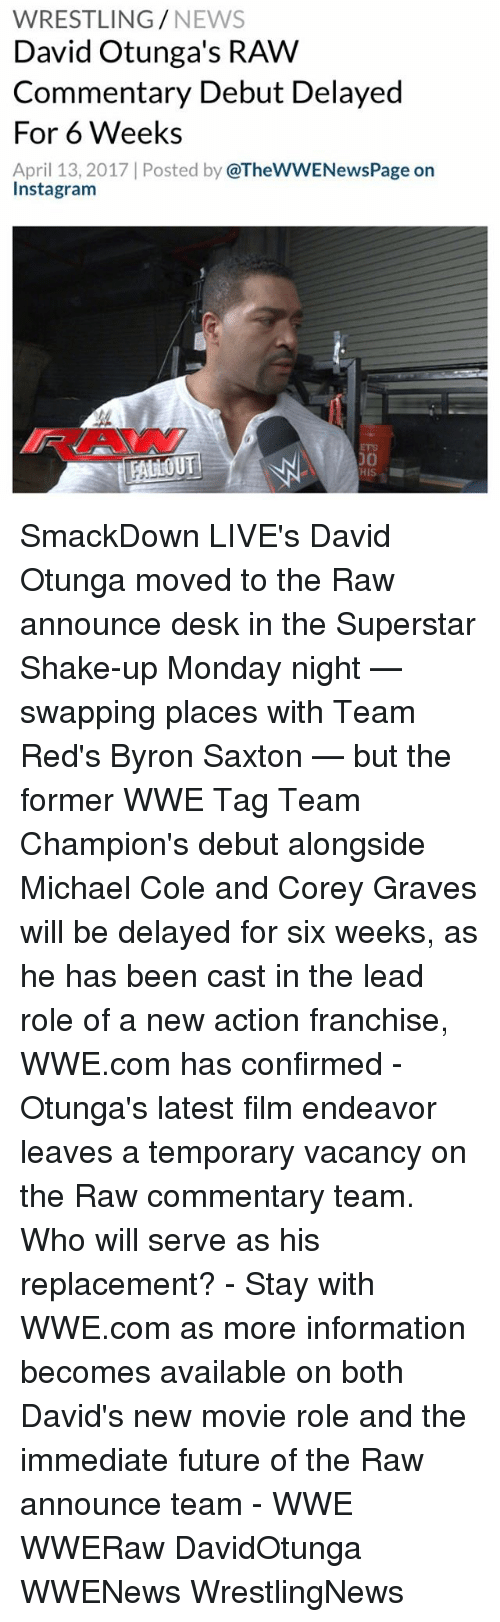 michael cole: WRESTLING  NEWS  David Otunga's RAW  Commentary Debut Delayed  For 6 Weeks  April 13, 2017 Posted by  @TheWWENewsPage on  Instagram  TRALLOUT SmackDown LIVE's David Otunga moved to the Raw announce desk in the Superstar Shake-up Monday night — swapping places with Team Red's Byron Saxton — but the former WWE Tag Team Champion's debut alongside Michael Cole and Corey Graves will be delayed for six weeks, as he has been cast in the lead role of a new action franchise, WWE.com has confirmed - Otunga's latest film endeavor leaves a temporary vacancy on the Raw commentary team. Who will serve as his replacement? - Stay with WWE.com as more information becomes available on both David's new movie role and the immediate future of the Raw announce team - WWE WWERaw DavidOtunga WWENews WrestlingNews